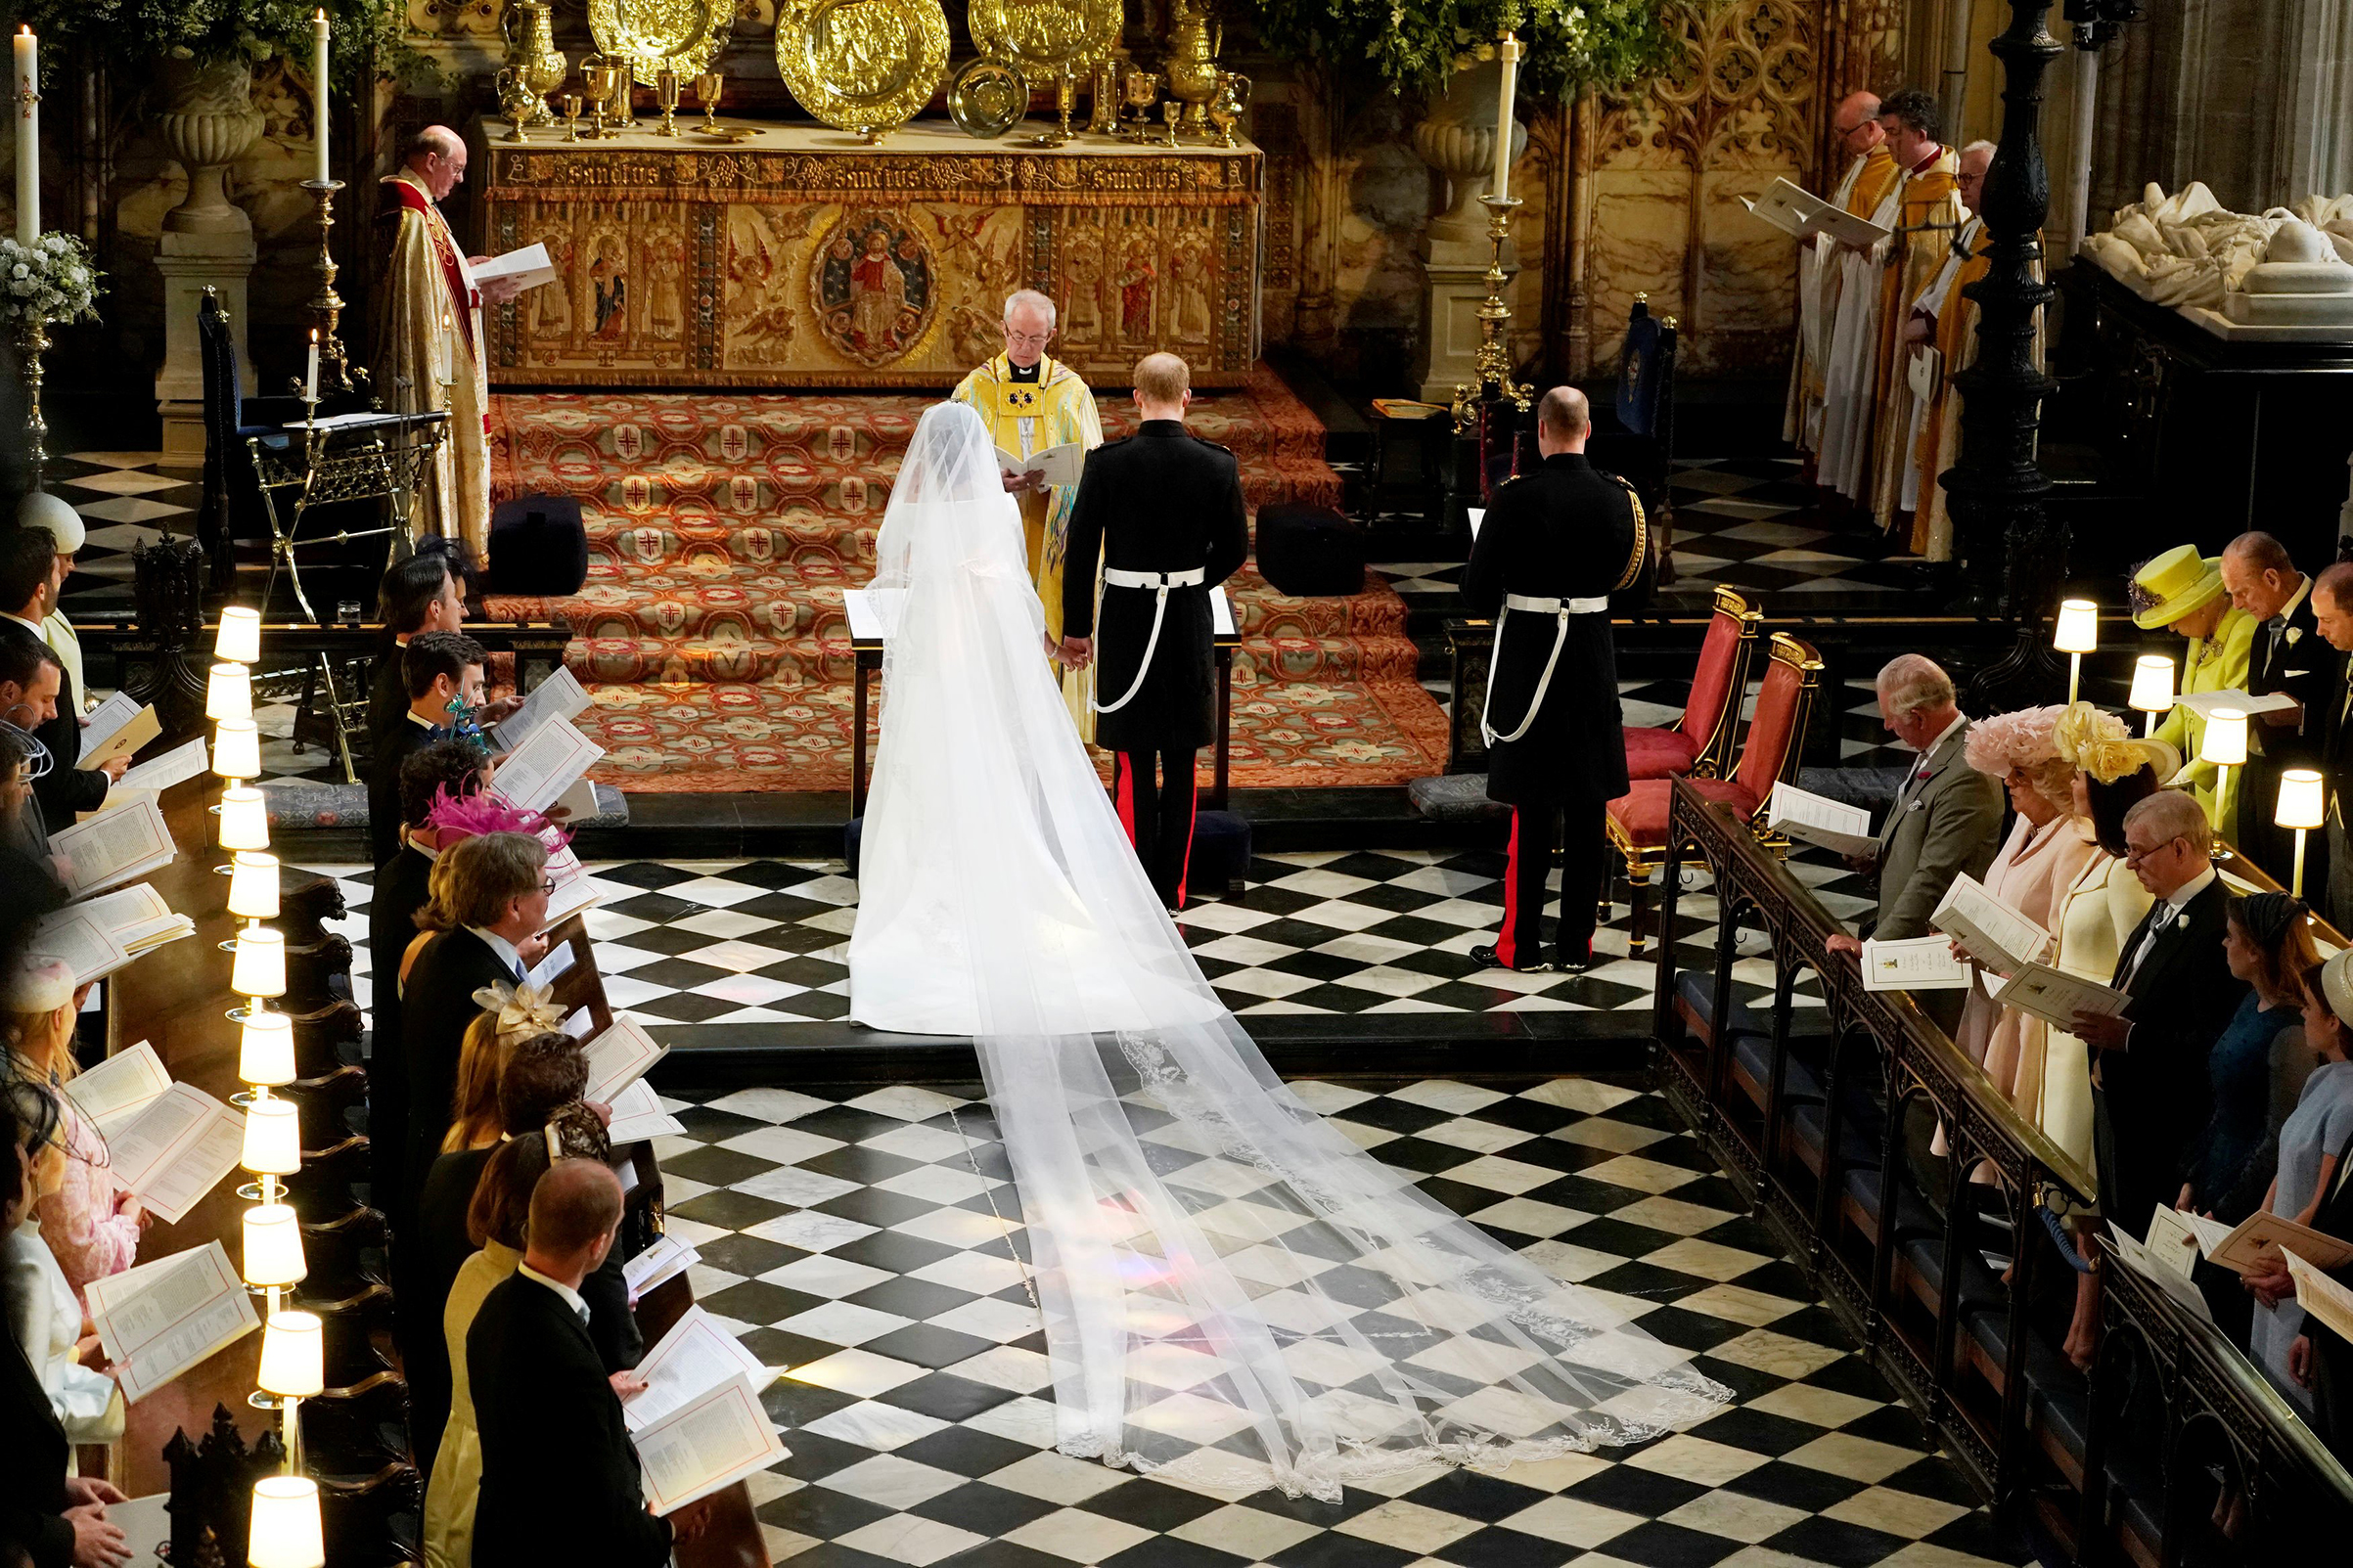 Prince Harry and Meghan Markle in St George's Chapel at Windsor Castle during their wedding service, conducted by the Archbishop of Canterbury Justin Welby in Windsor, Britain, May 19, 2018.